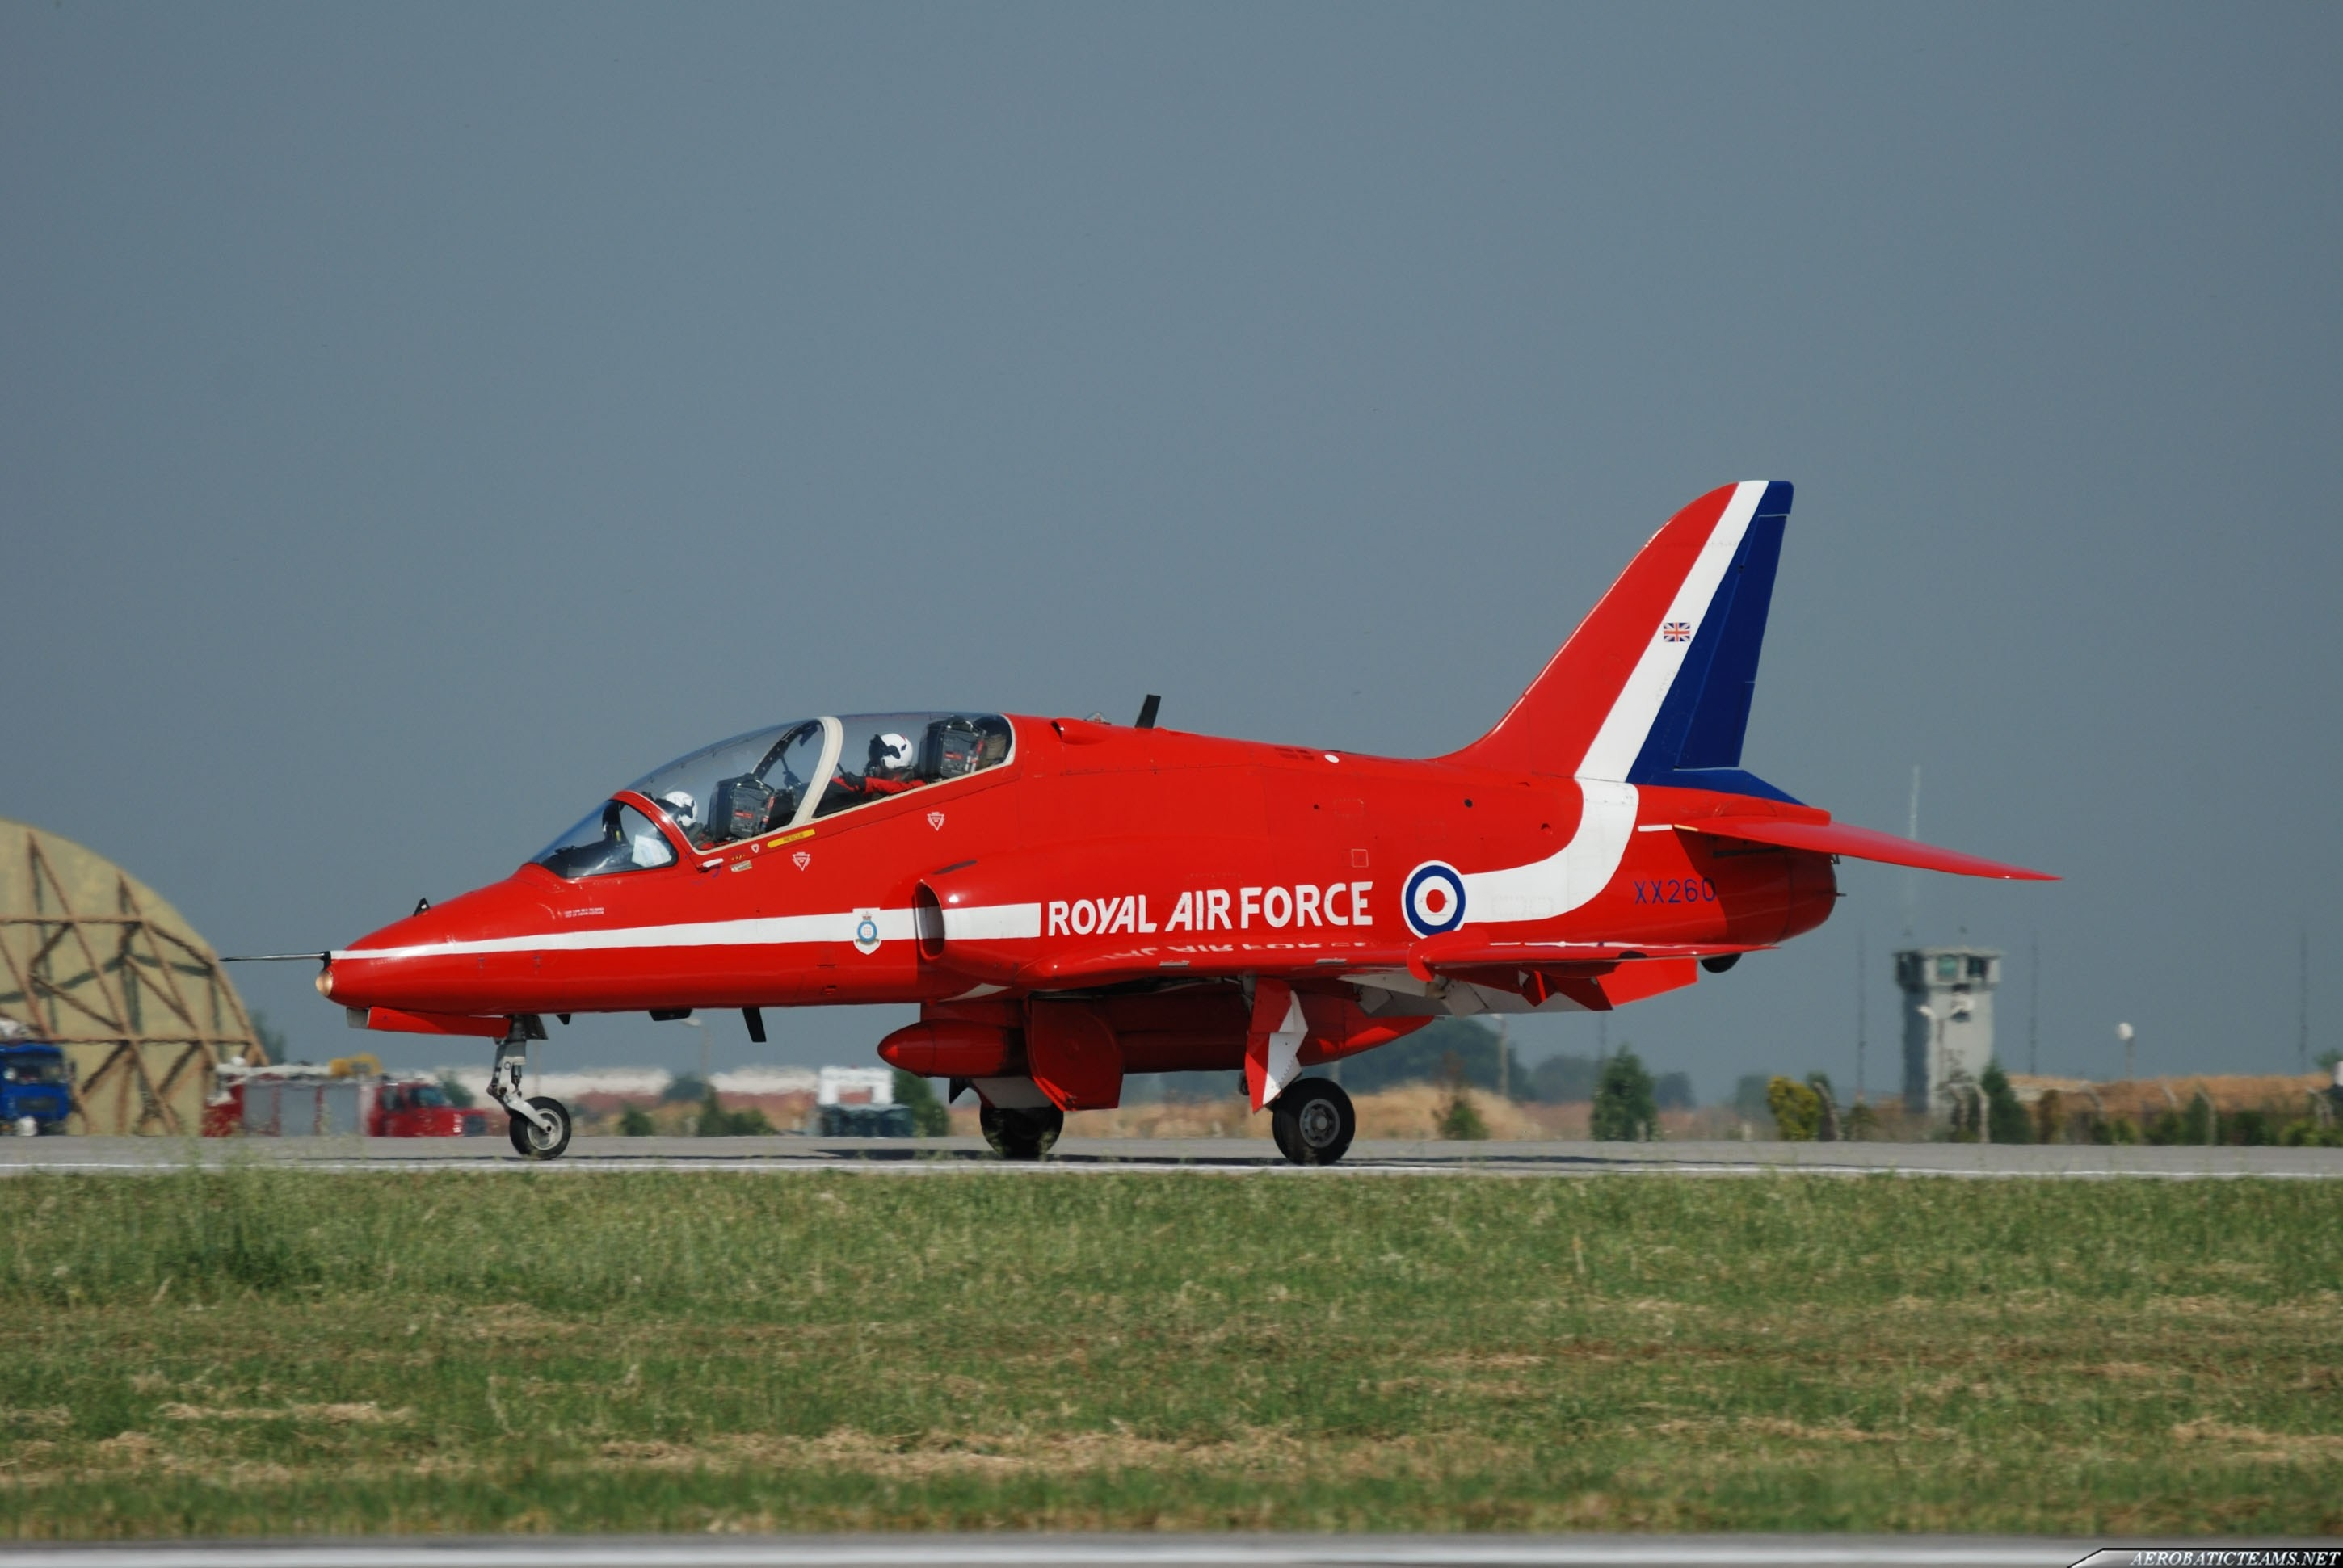 Red Arrows pilot killed because of failed to open parachute